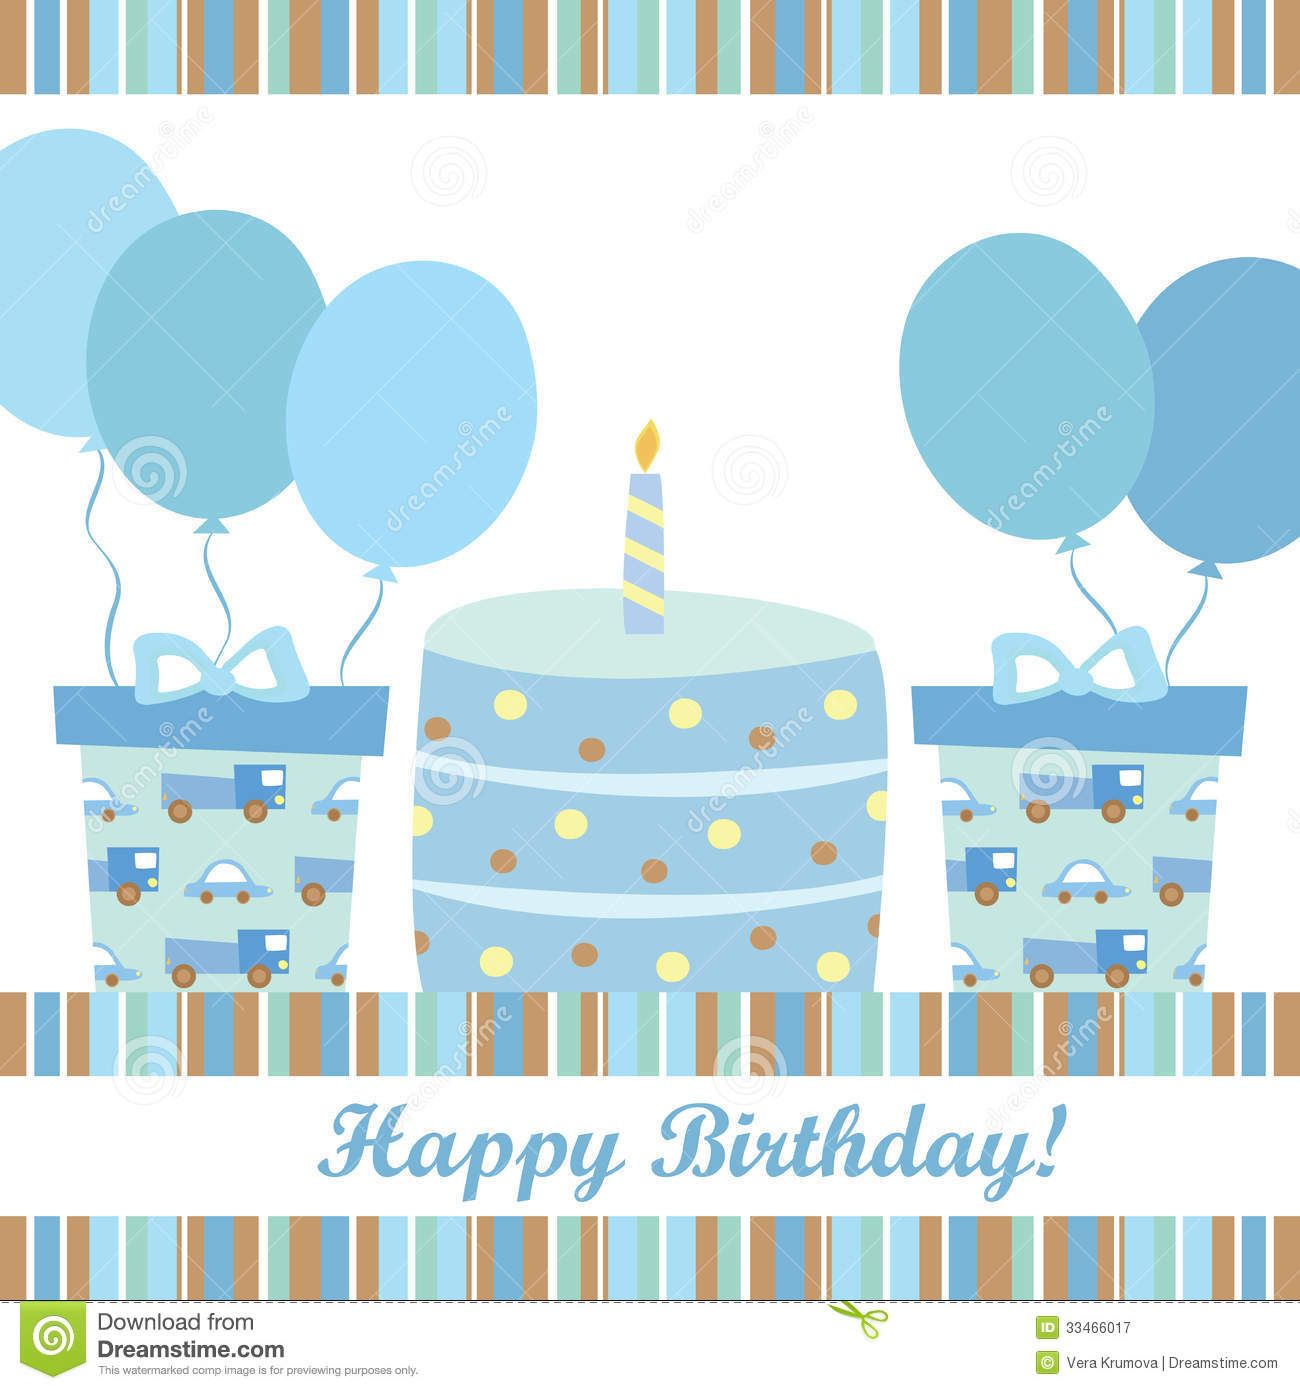 Birthday Card For Boy My Birthday Pinterest – Boy Birthday Cards